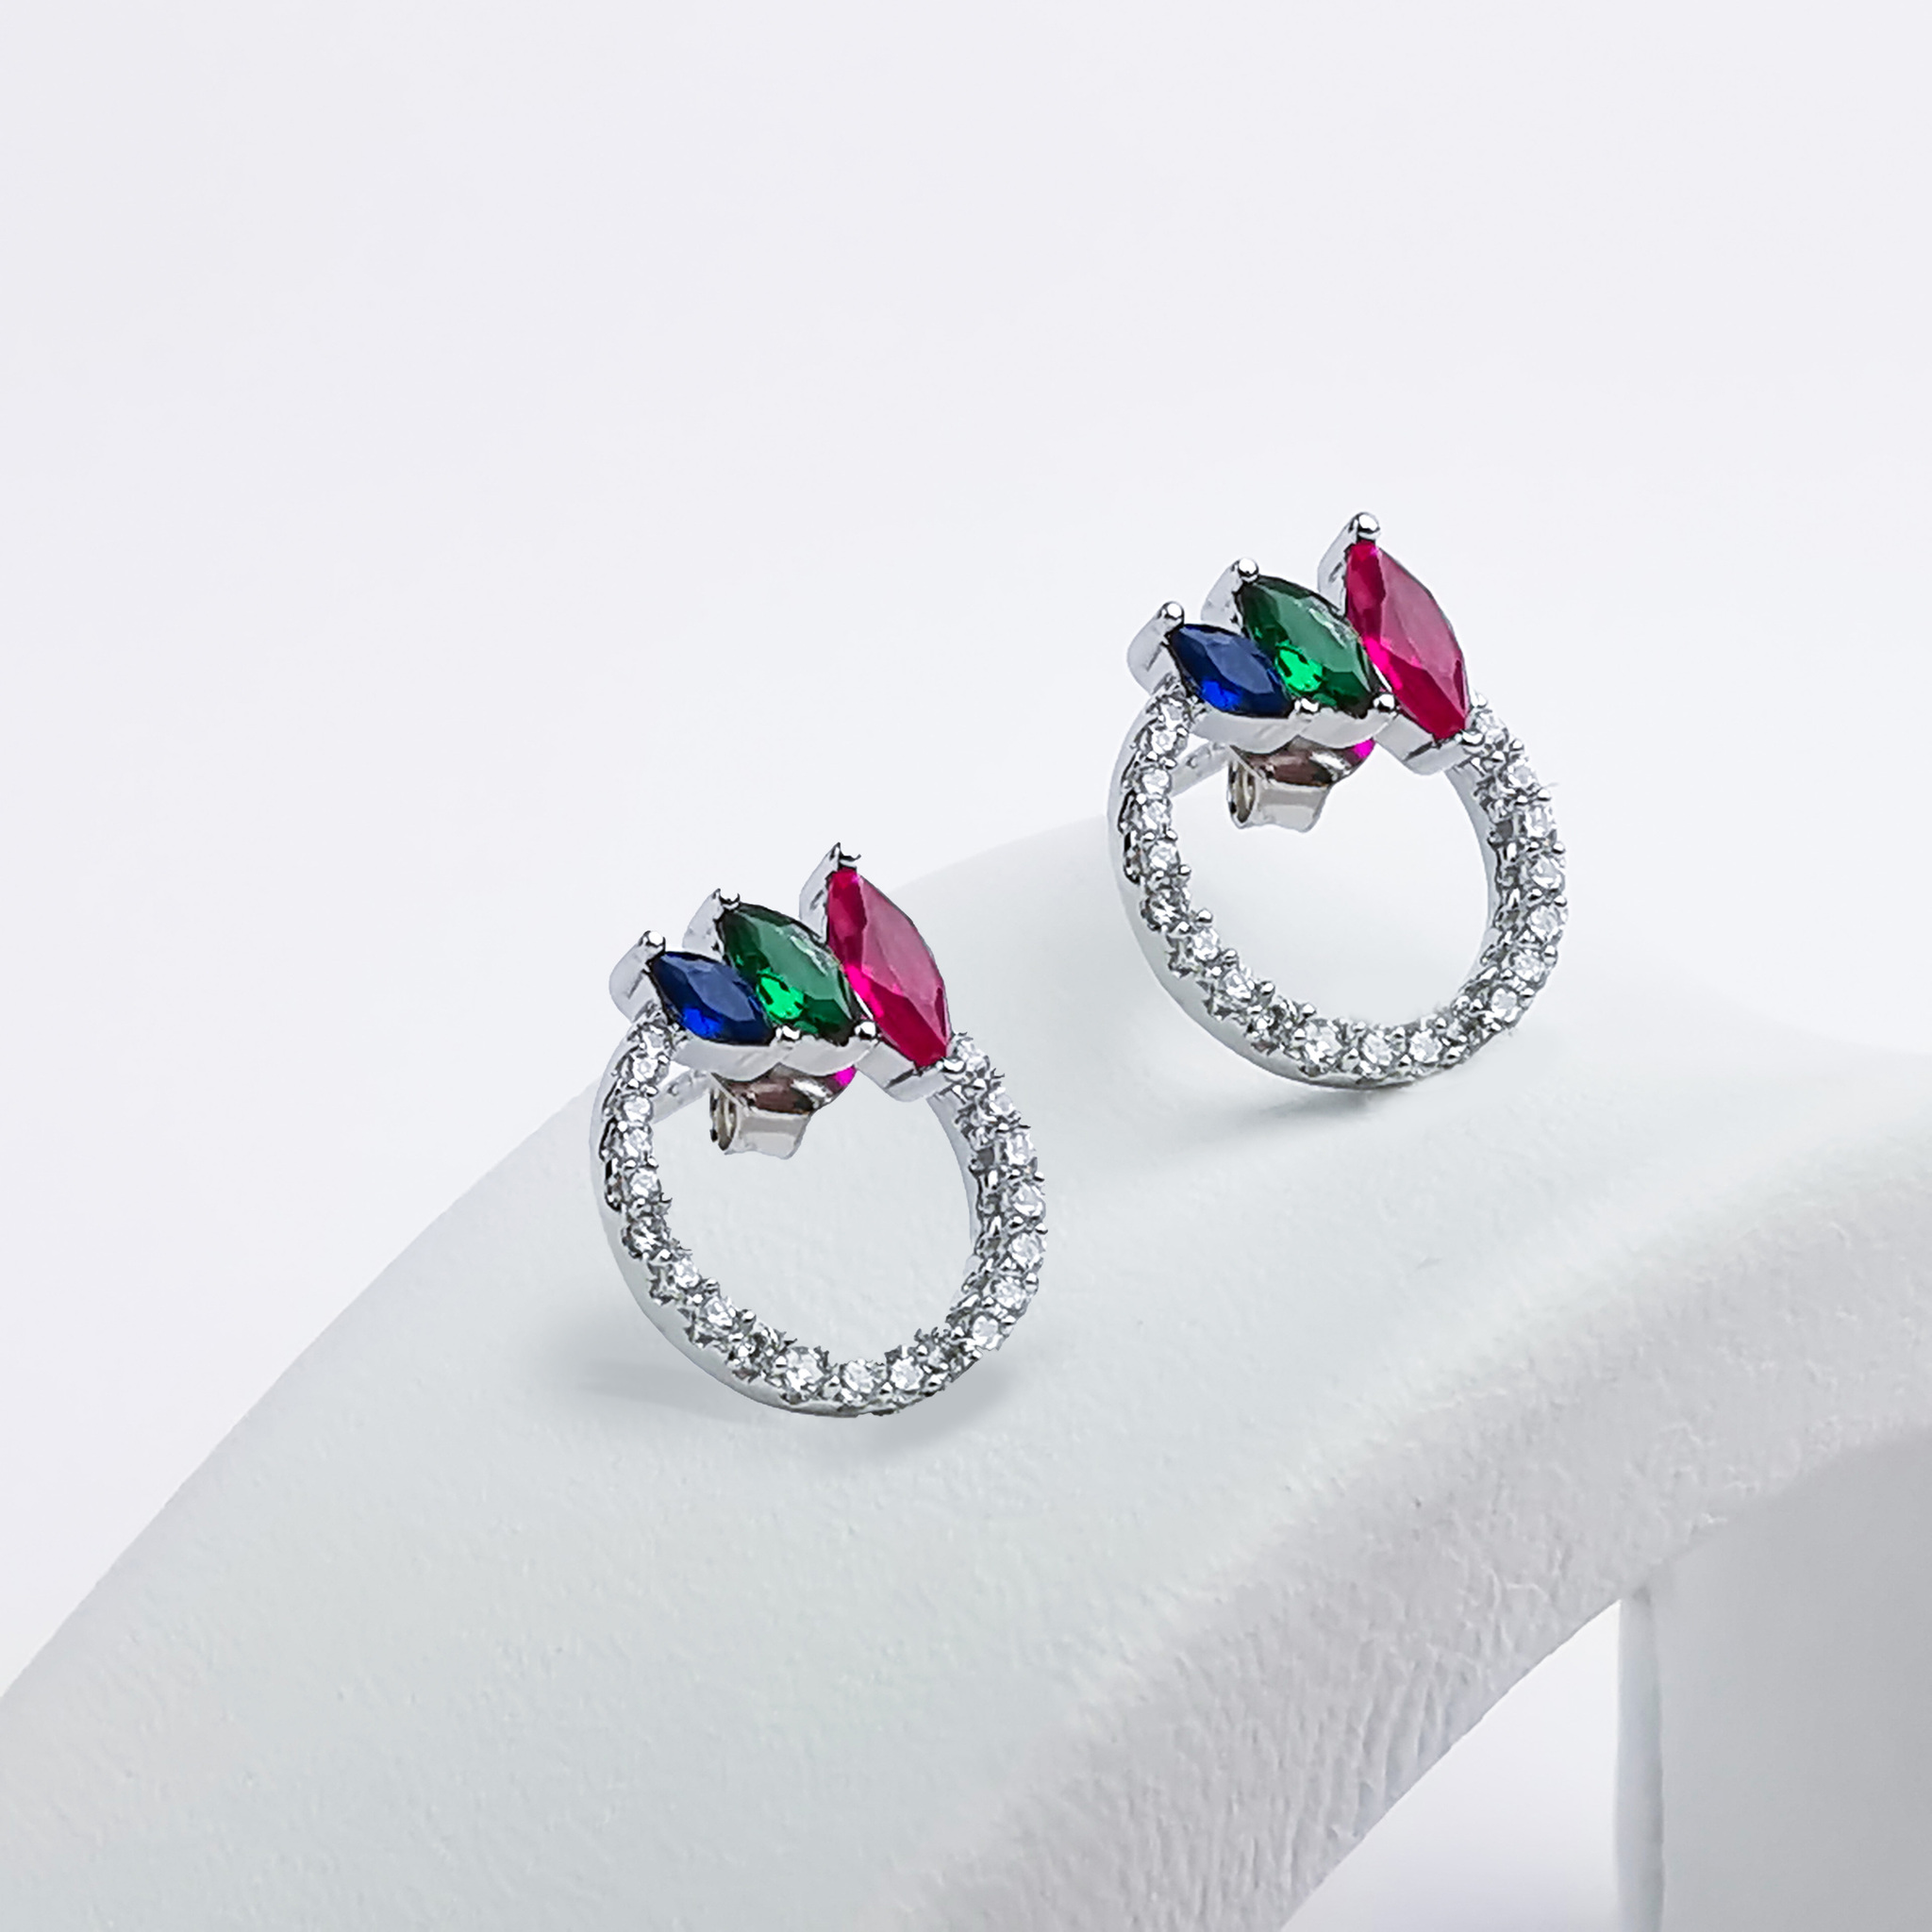 1 - Venezia  Silver Örhänge 925 Modern and trendy earings and women jewelry and accessories